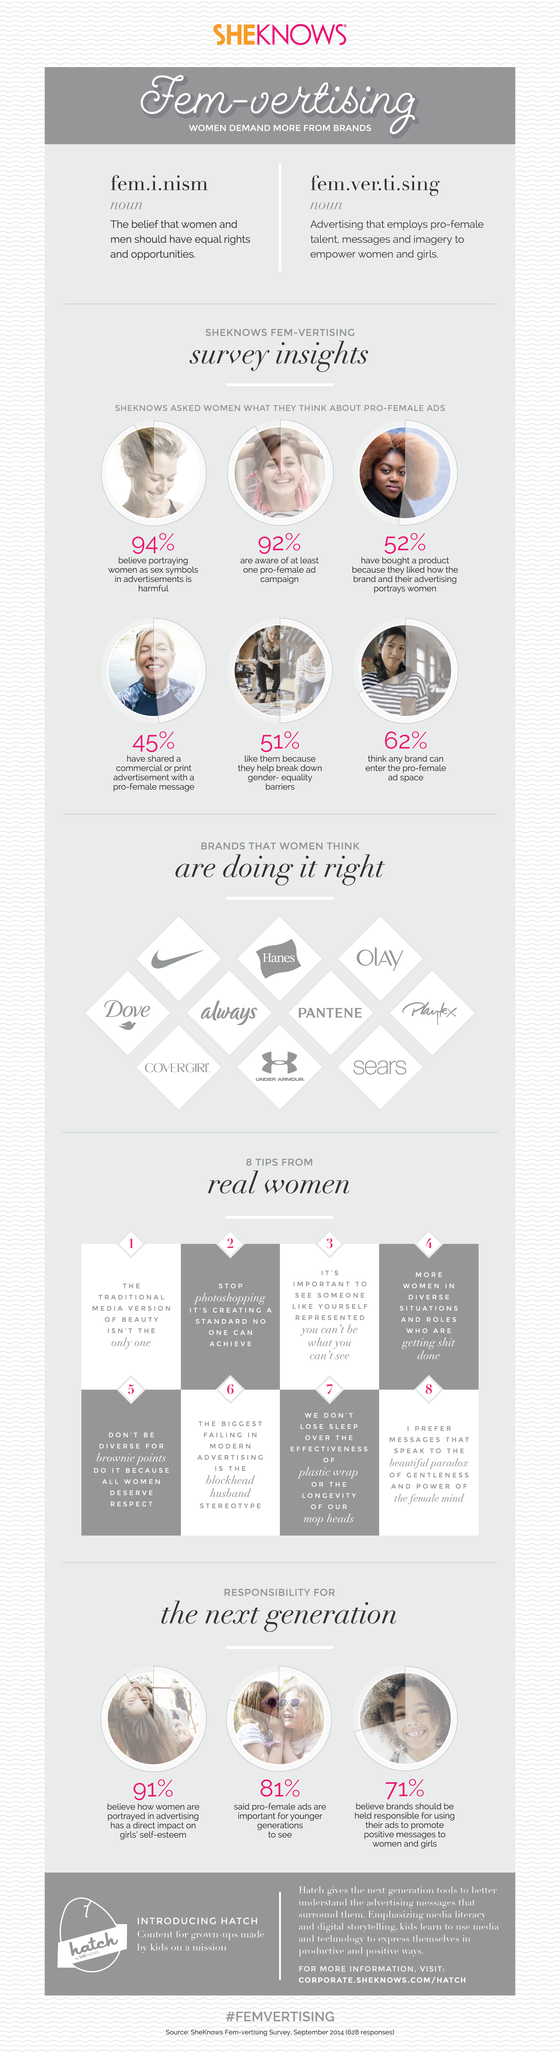 Marketing Rose - Sheknows infographics